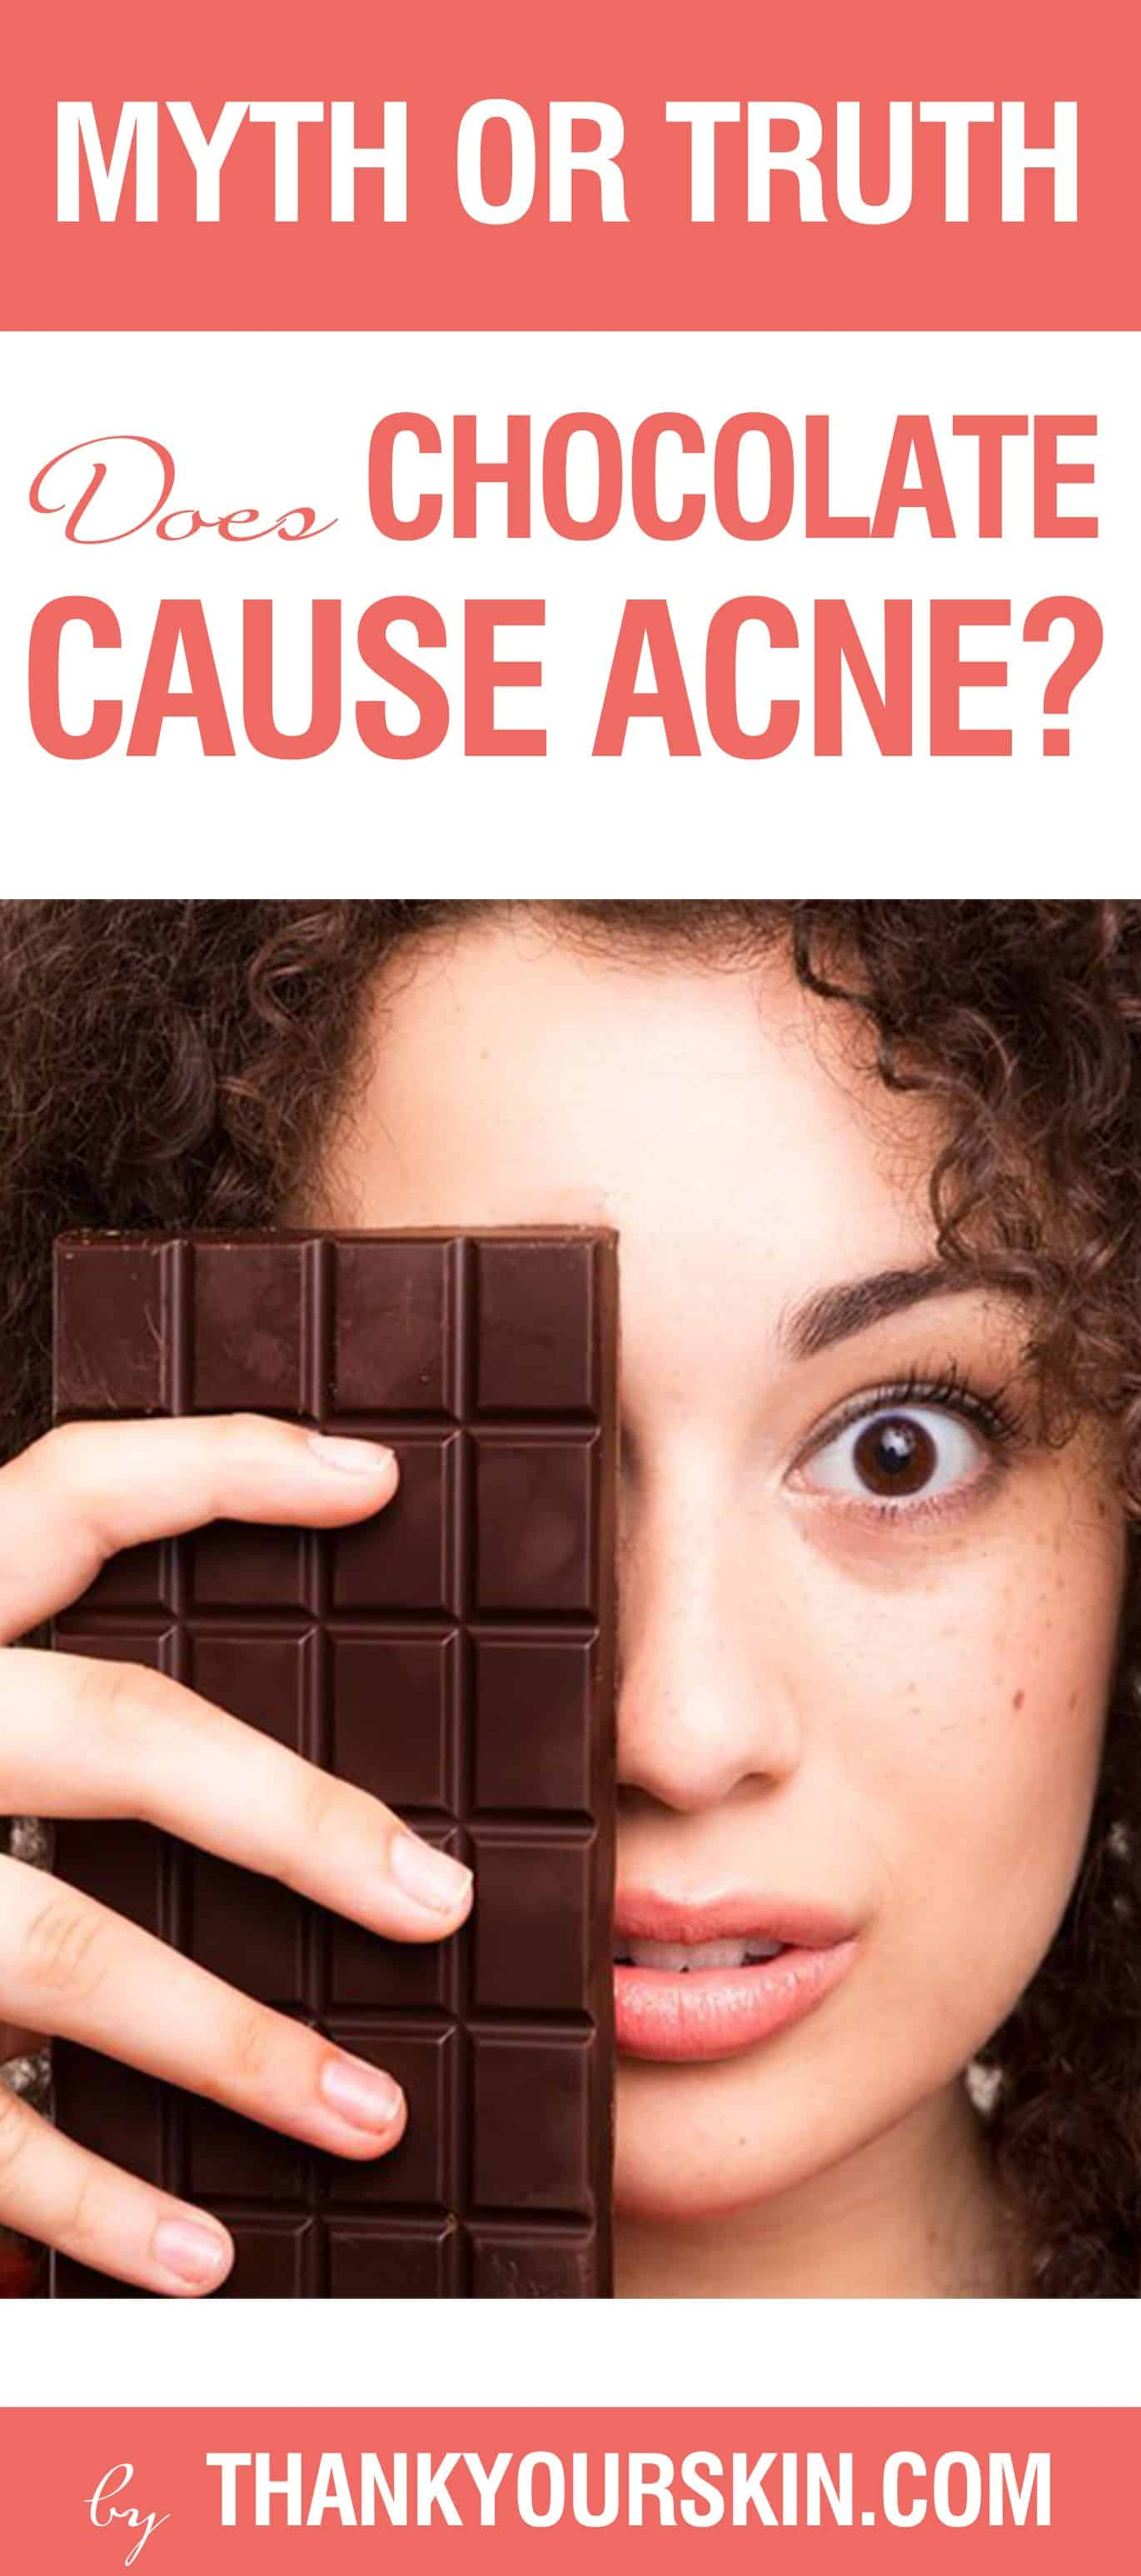 Myth or Truth: Does Chocolate Cause Acne?